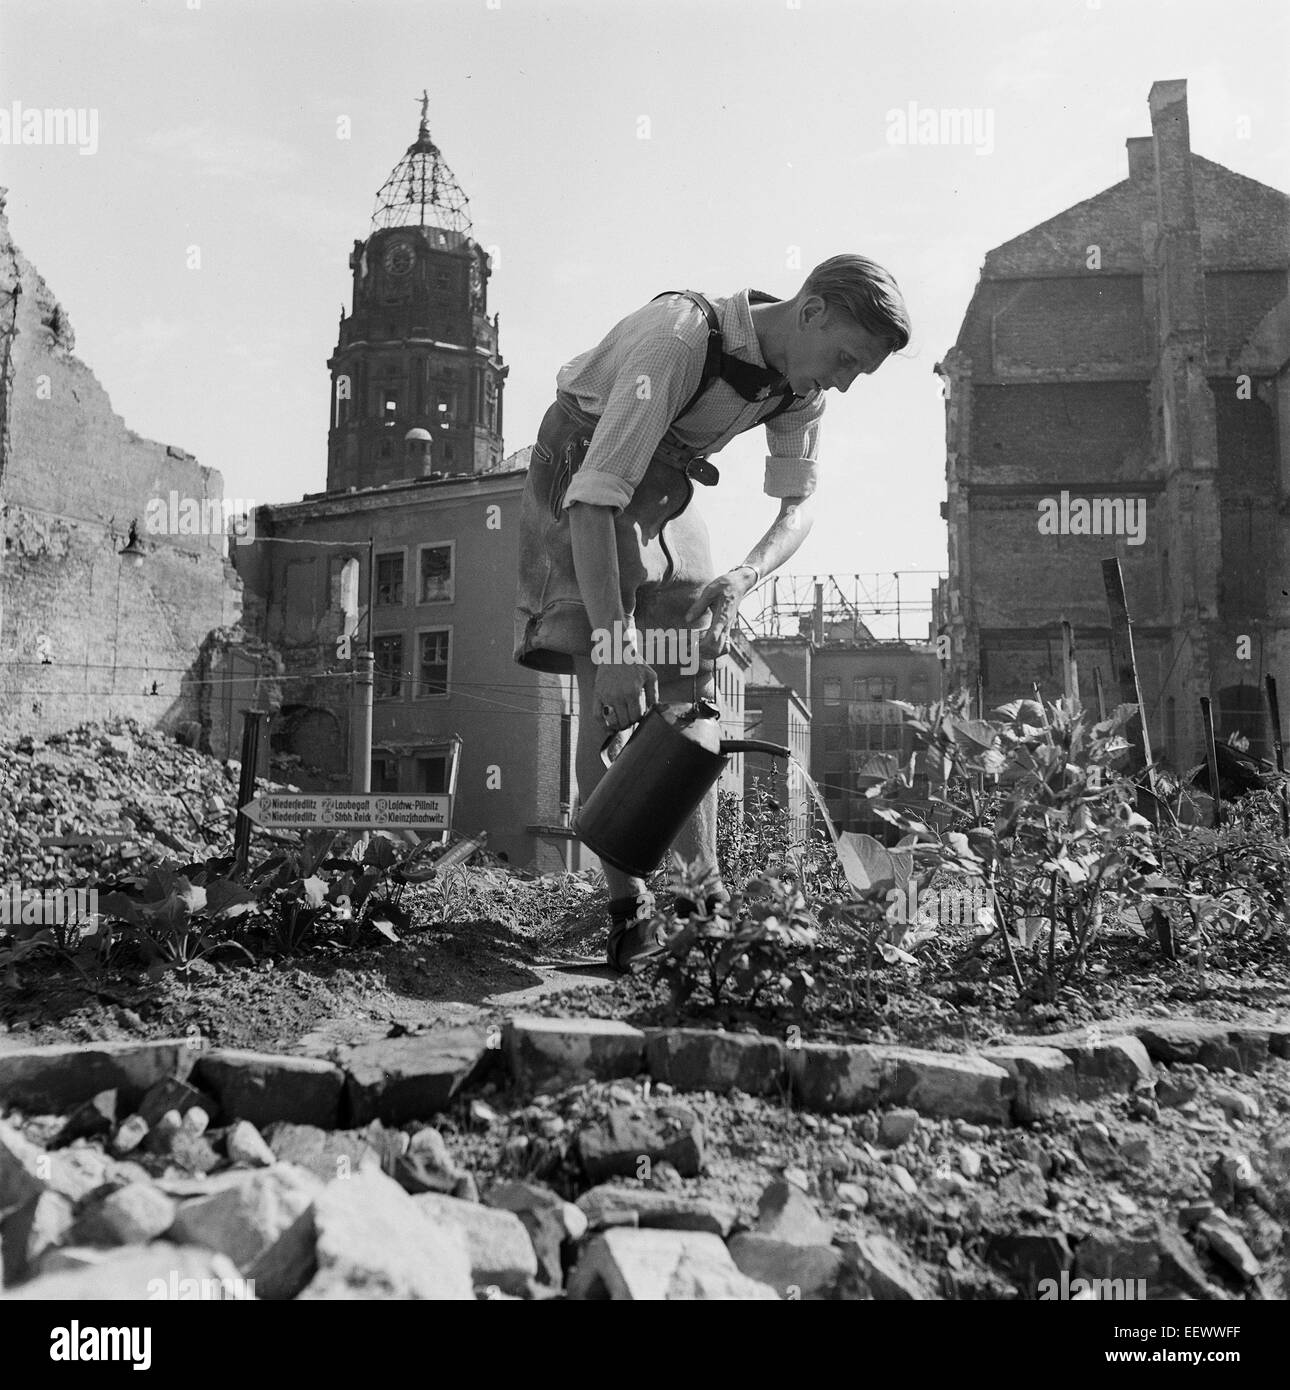 The photo by famous photographer Richard Peter sen. shows a young man who is growing vegetables, surrounded by ruins Stock Photo